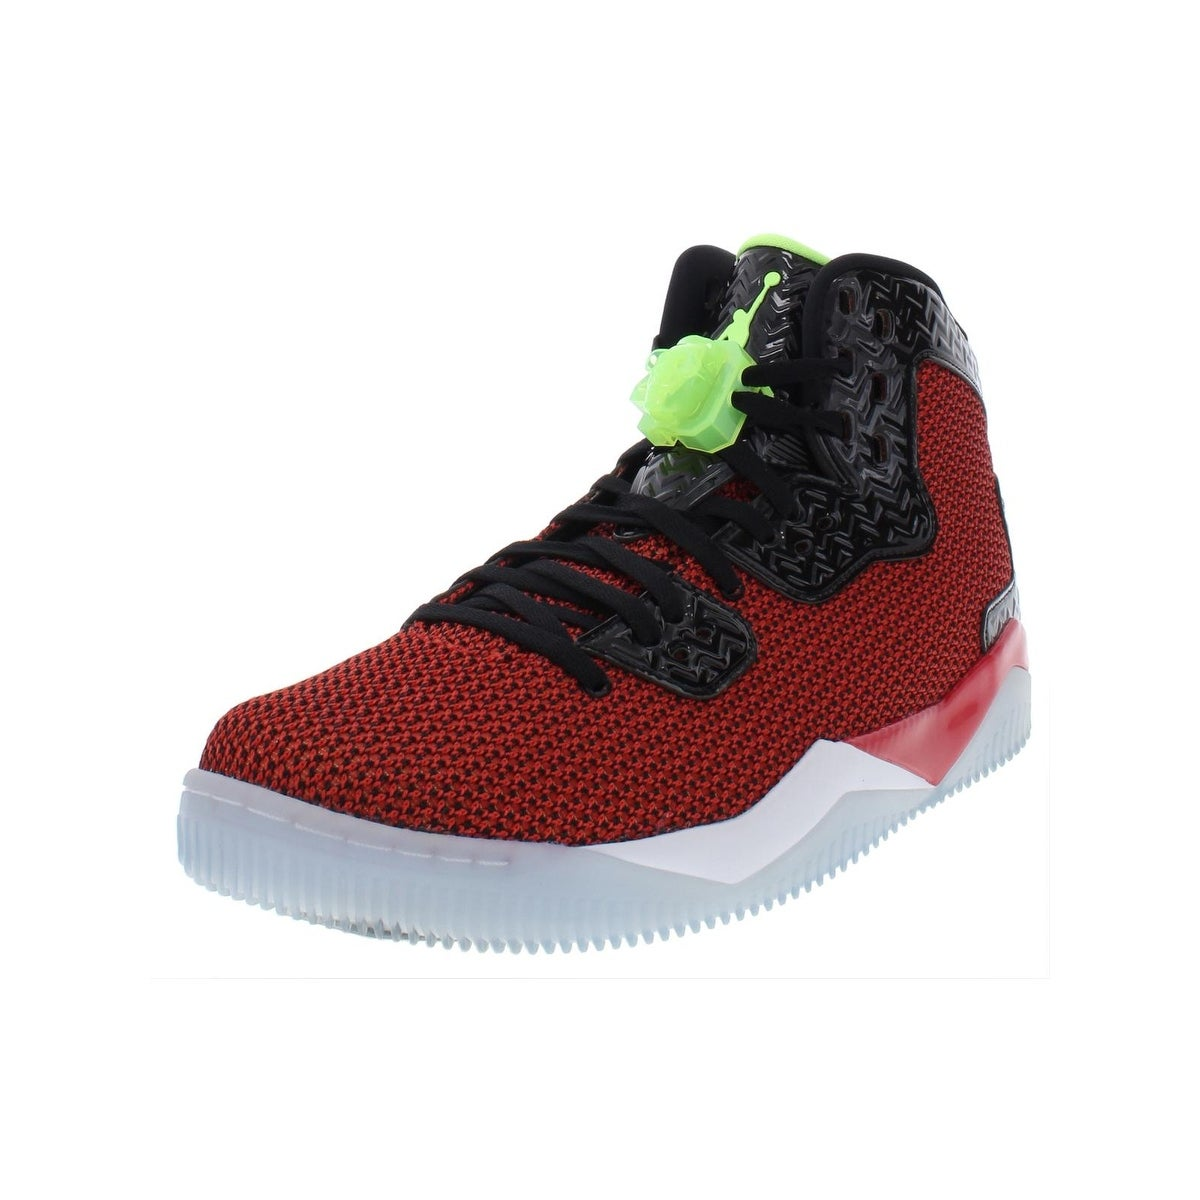 new style 3f76f 0fcf3 Red Jordan Men s Shoes   Find Great Shoes Deals Shopping at Overstock